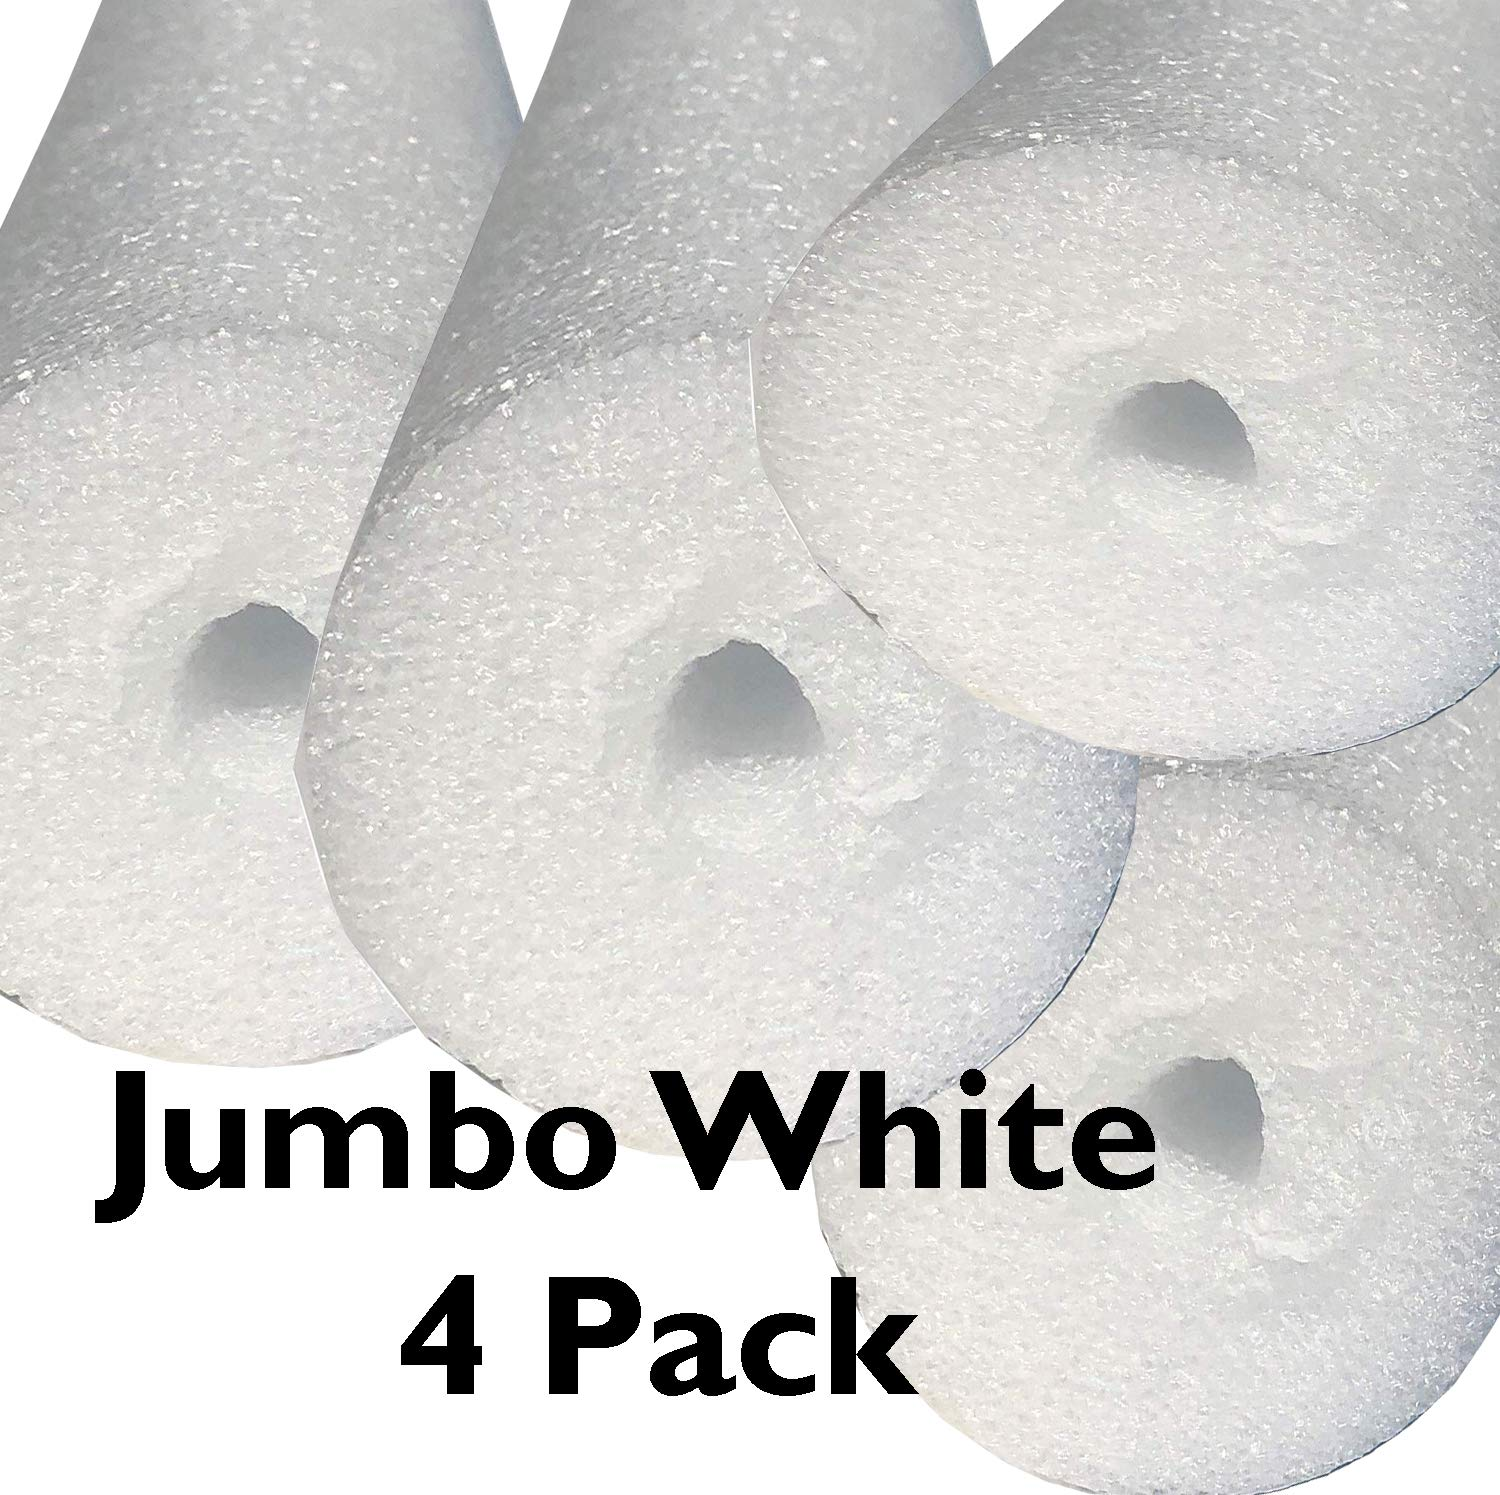 Flex Connex 4 Pack Jumbo 60 Inch x 3.5 Inch Jumbo Swimming Pool Noodle Foam Multi-Purpose (White) by Flex Connex